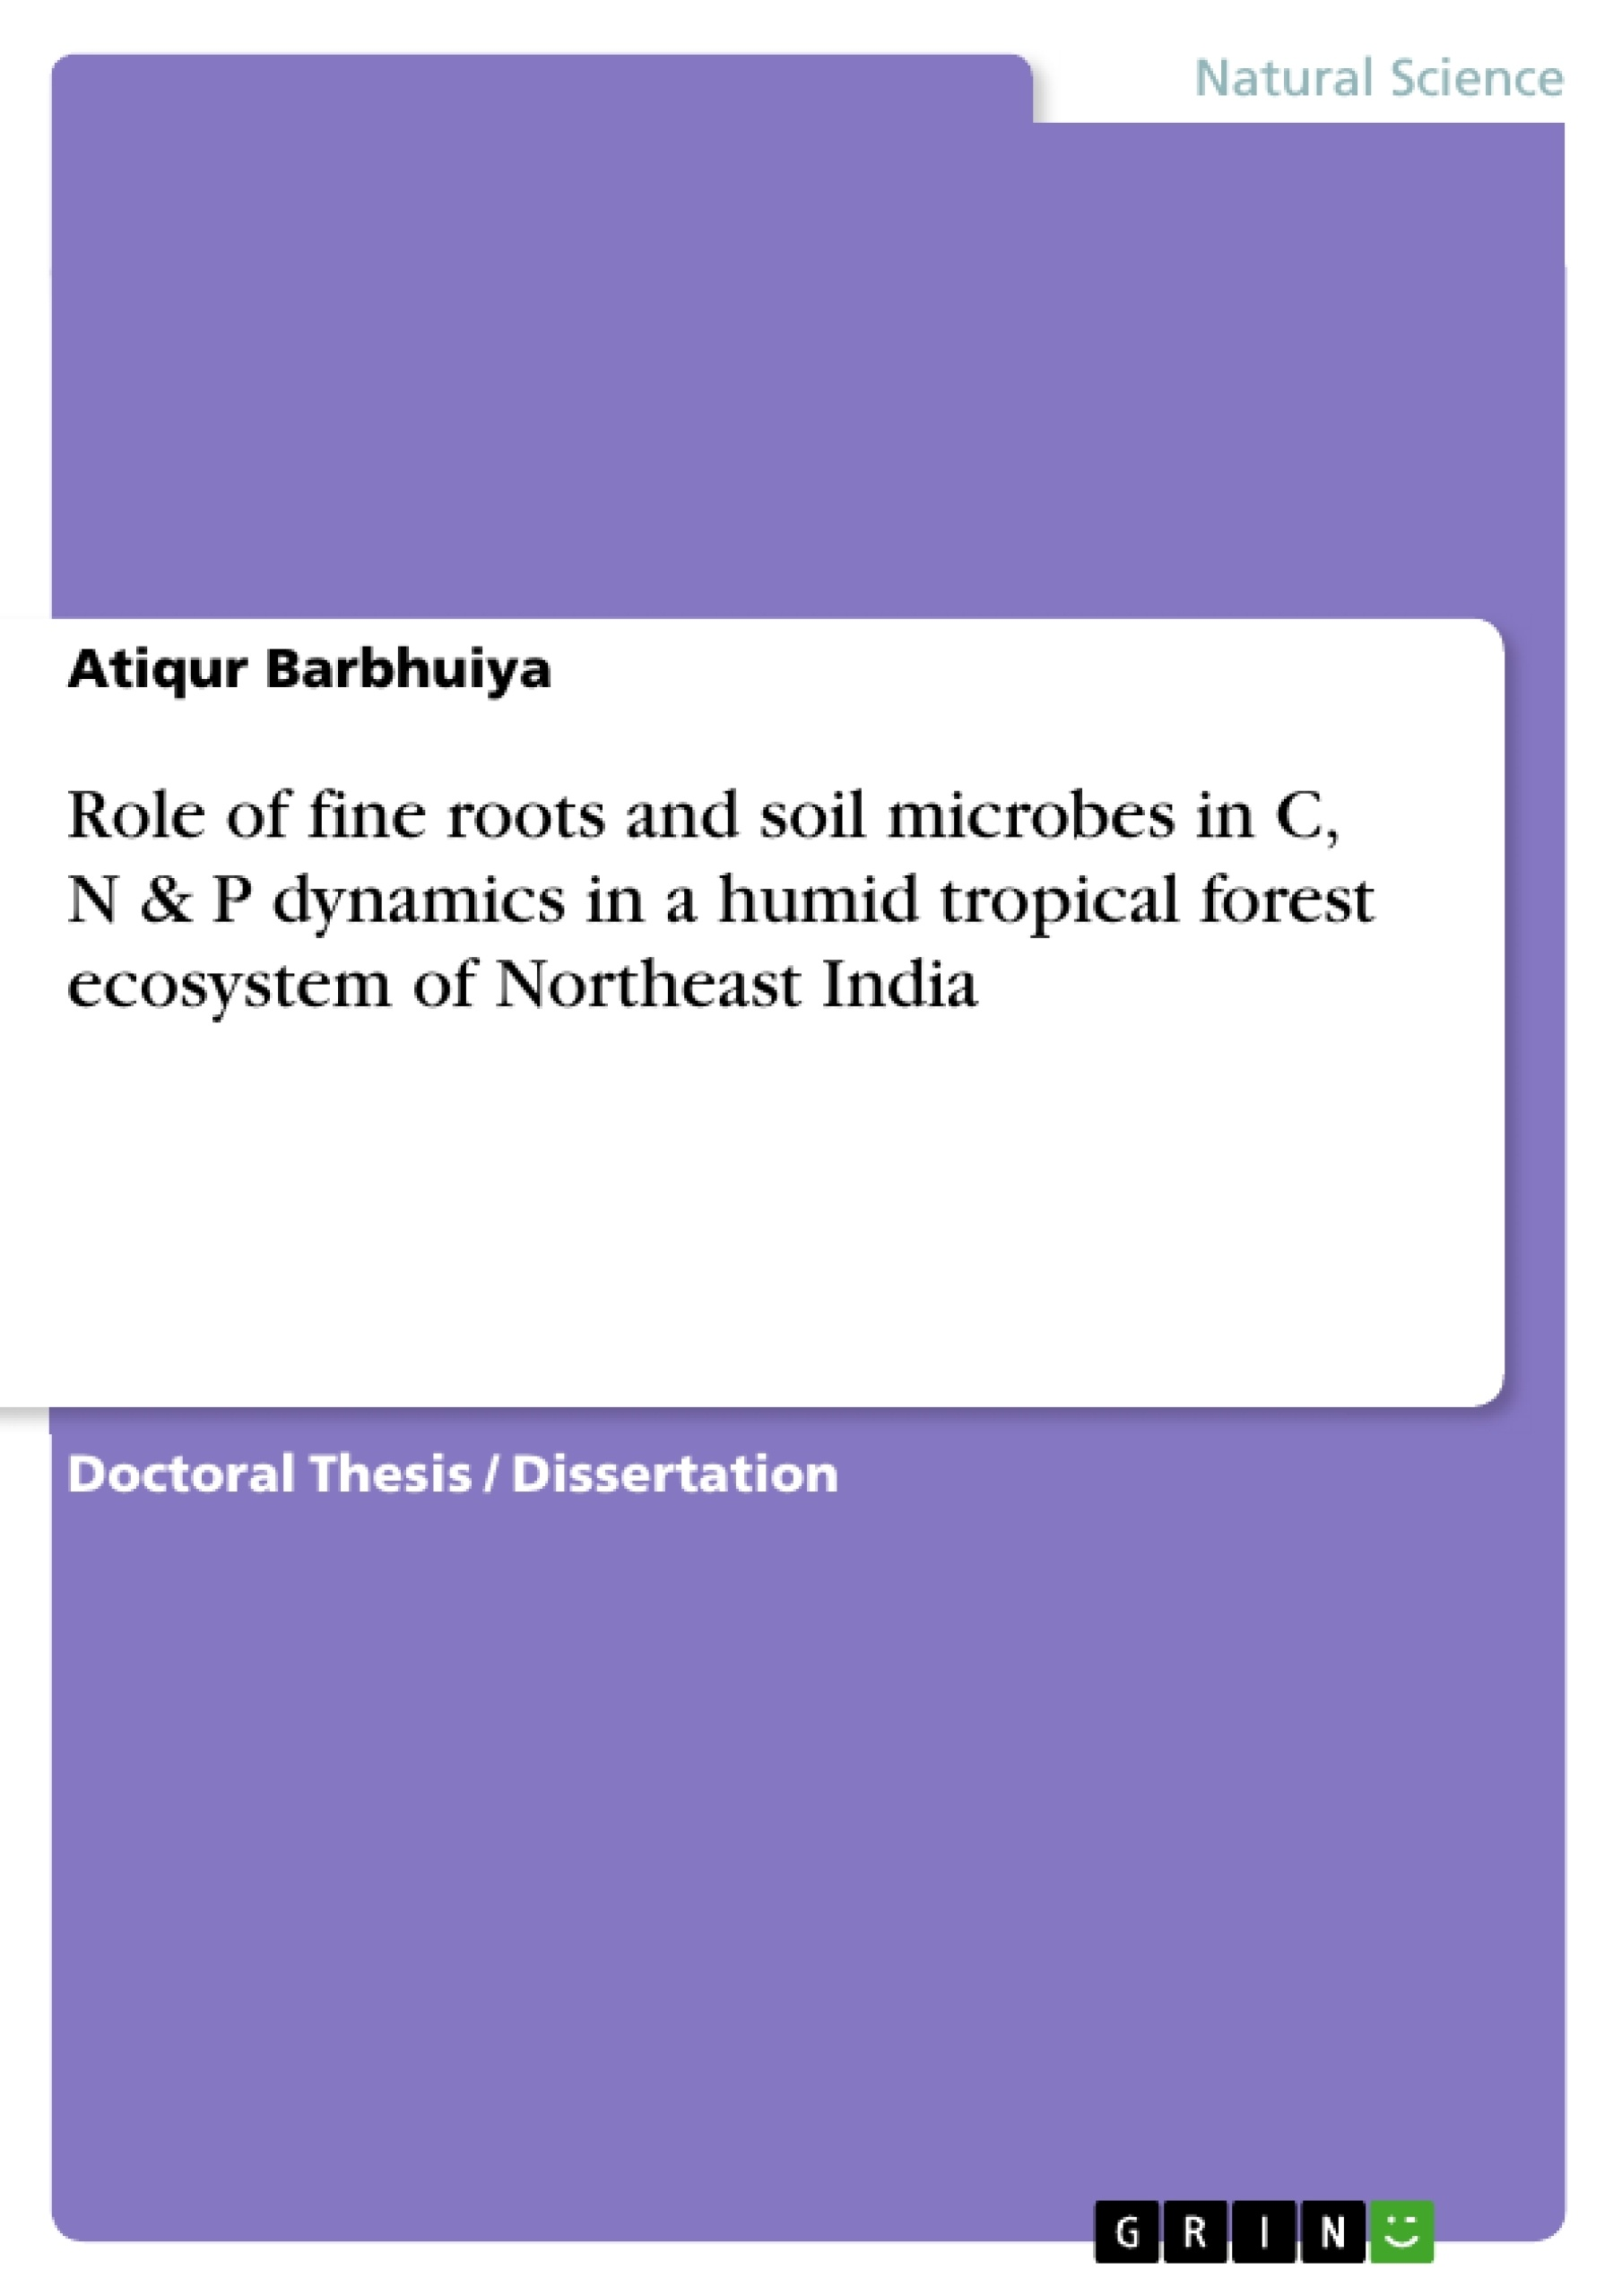 Title: Role of fine roots and soil microbes in C, N & P dynamics in a humid tropical forest ecosystem of Northeast India